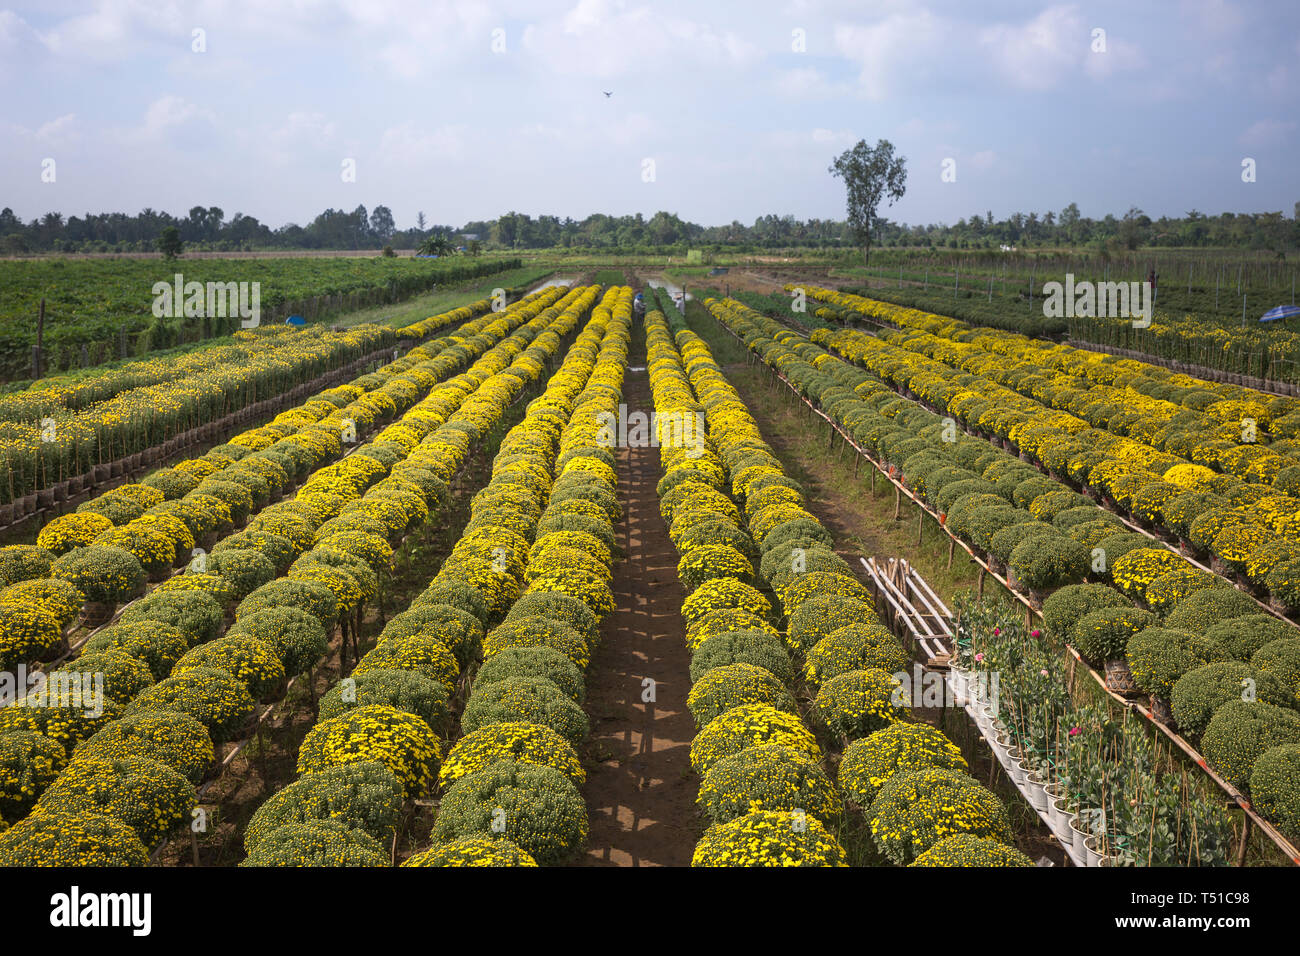 Sa Dec flowers village, Dong Thap province, Vietnam - January 13, 2017: drones and yellow daisy field at Sa Dec flower village. ready for harvest for - Stock Image